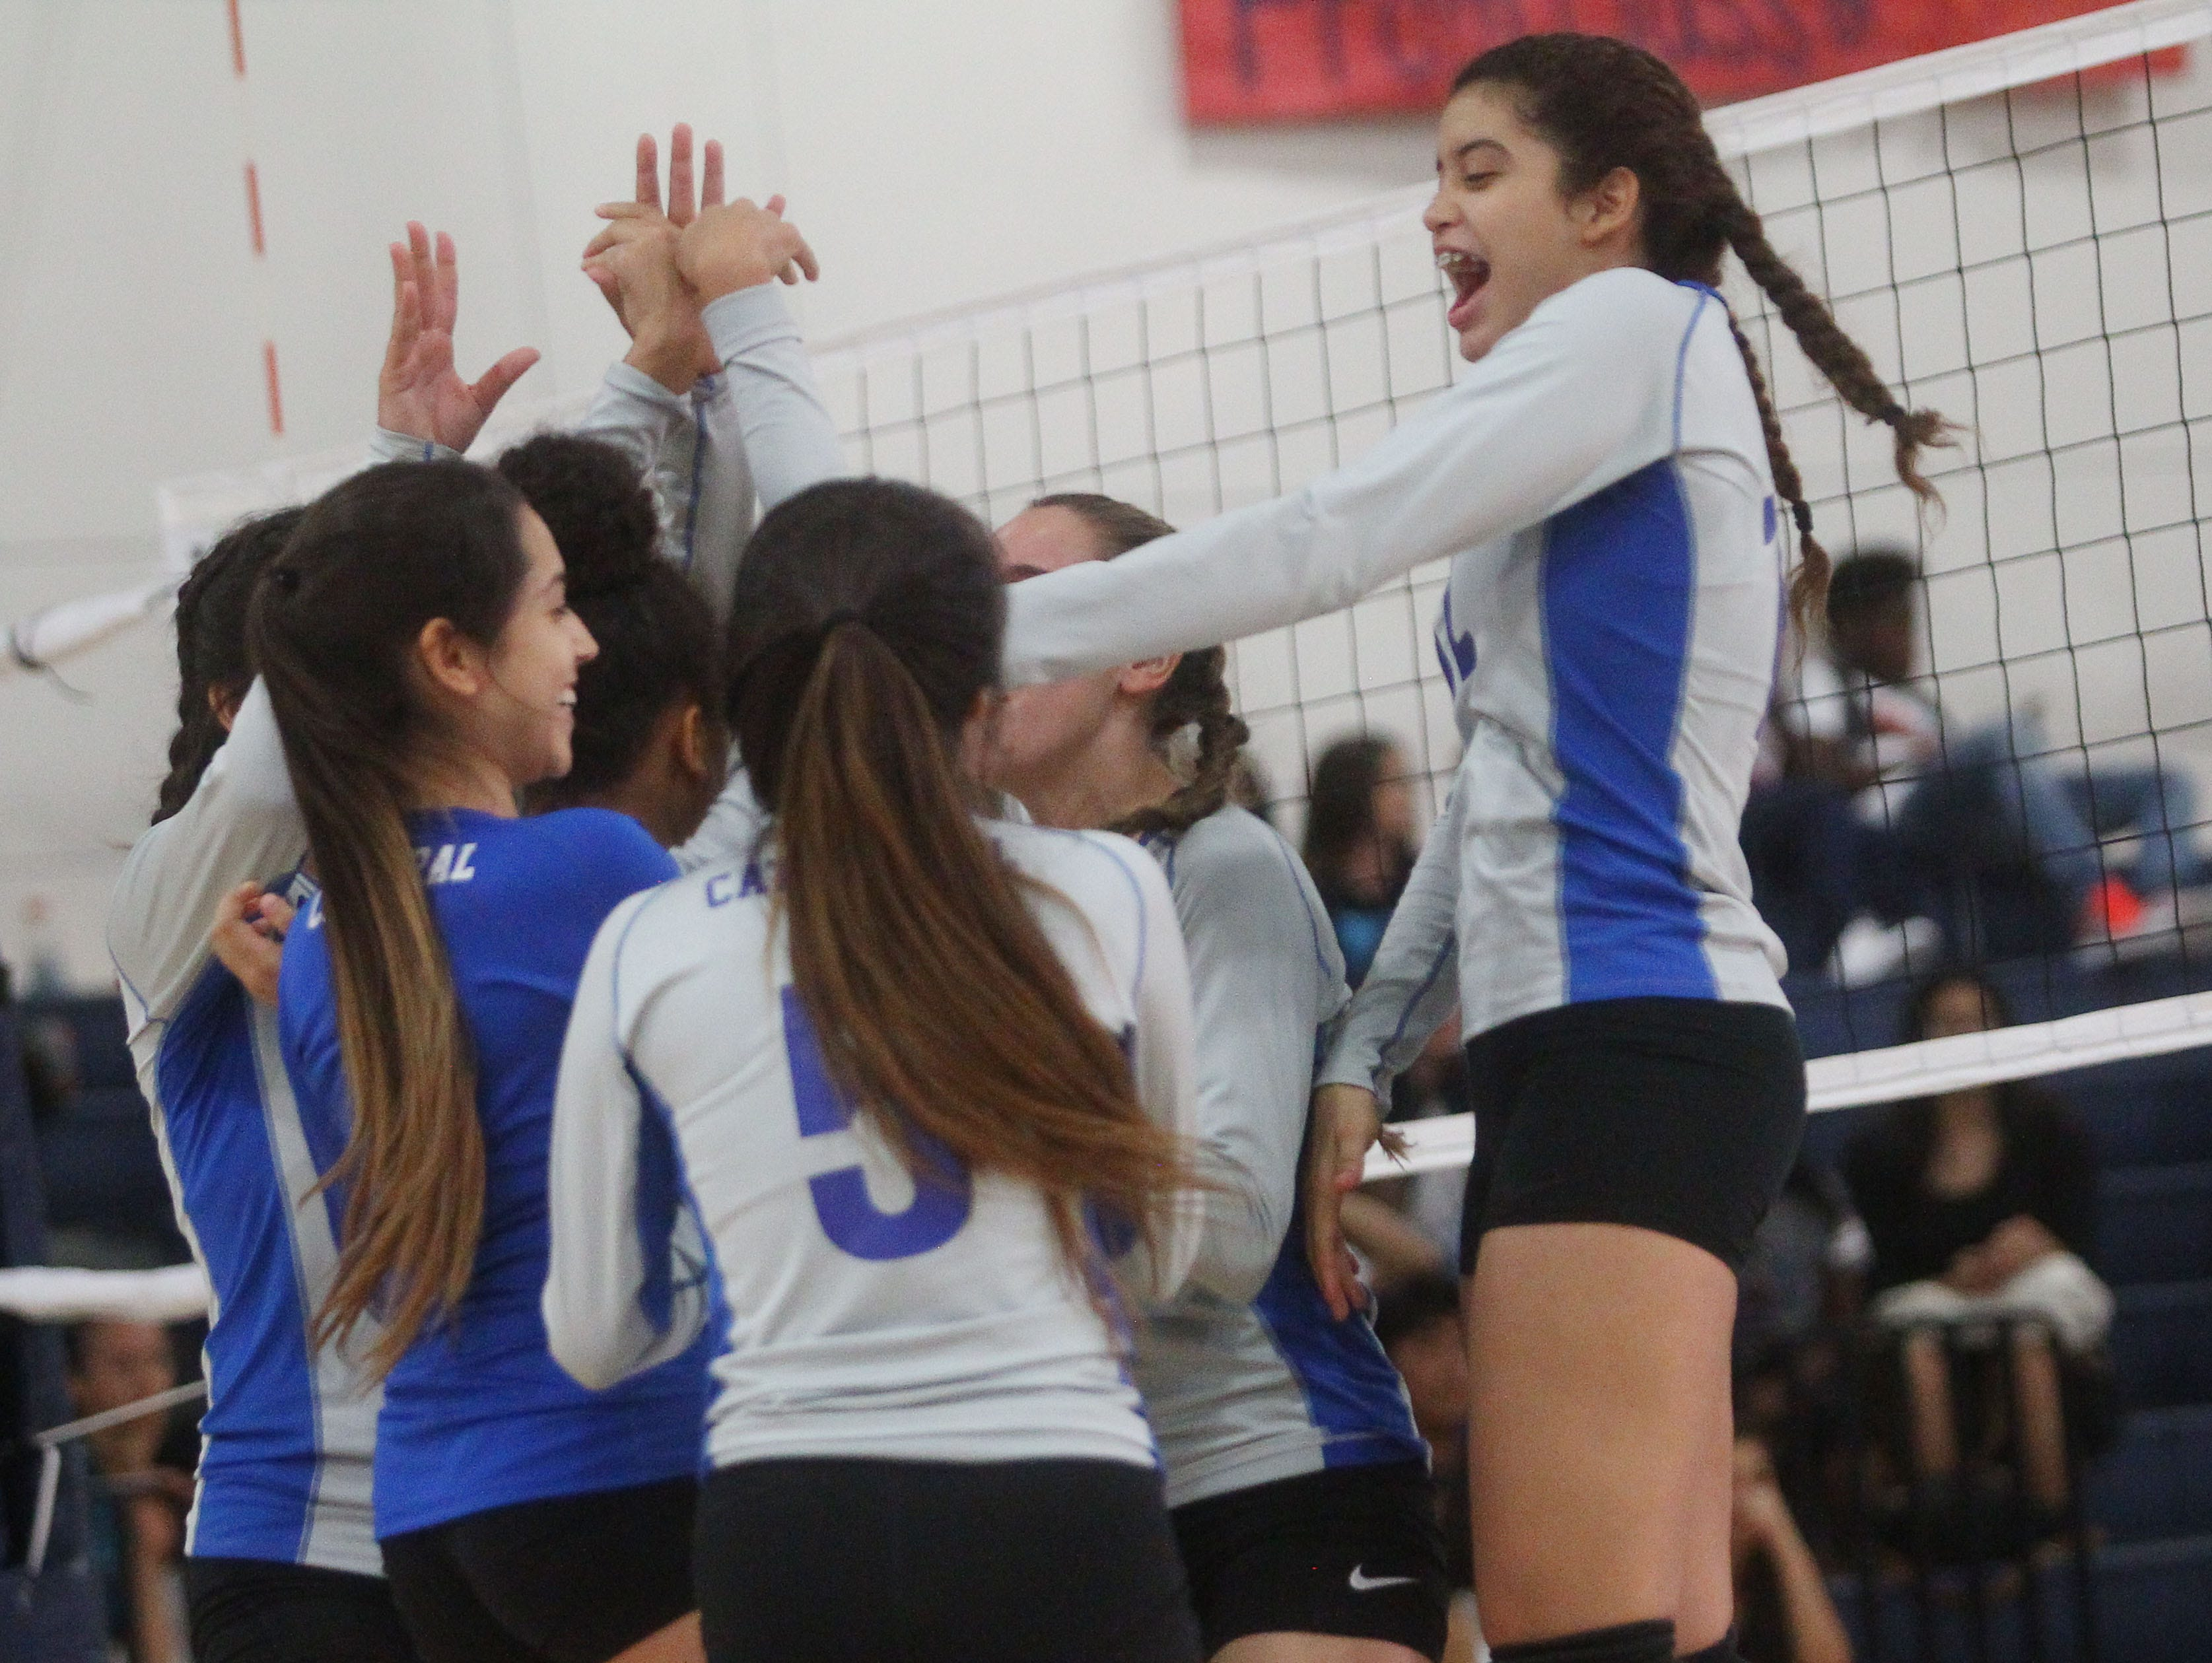 At far right, Cathedral City High School's Nia Chicas celebrates a point won against Desert Hot Springs with her team mates. Cathedral City won the match on the road.